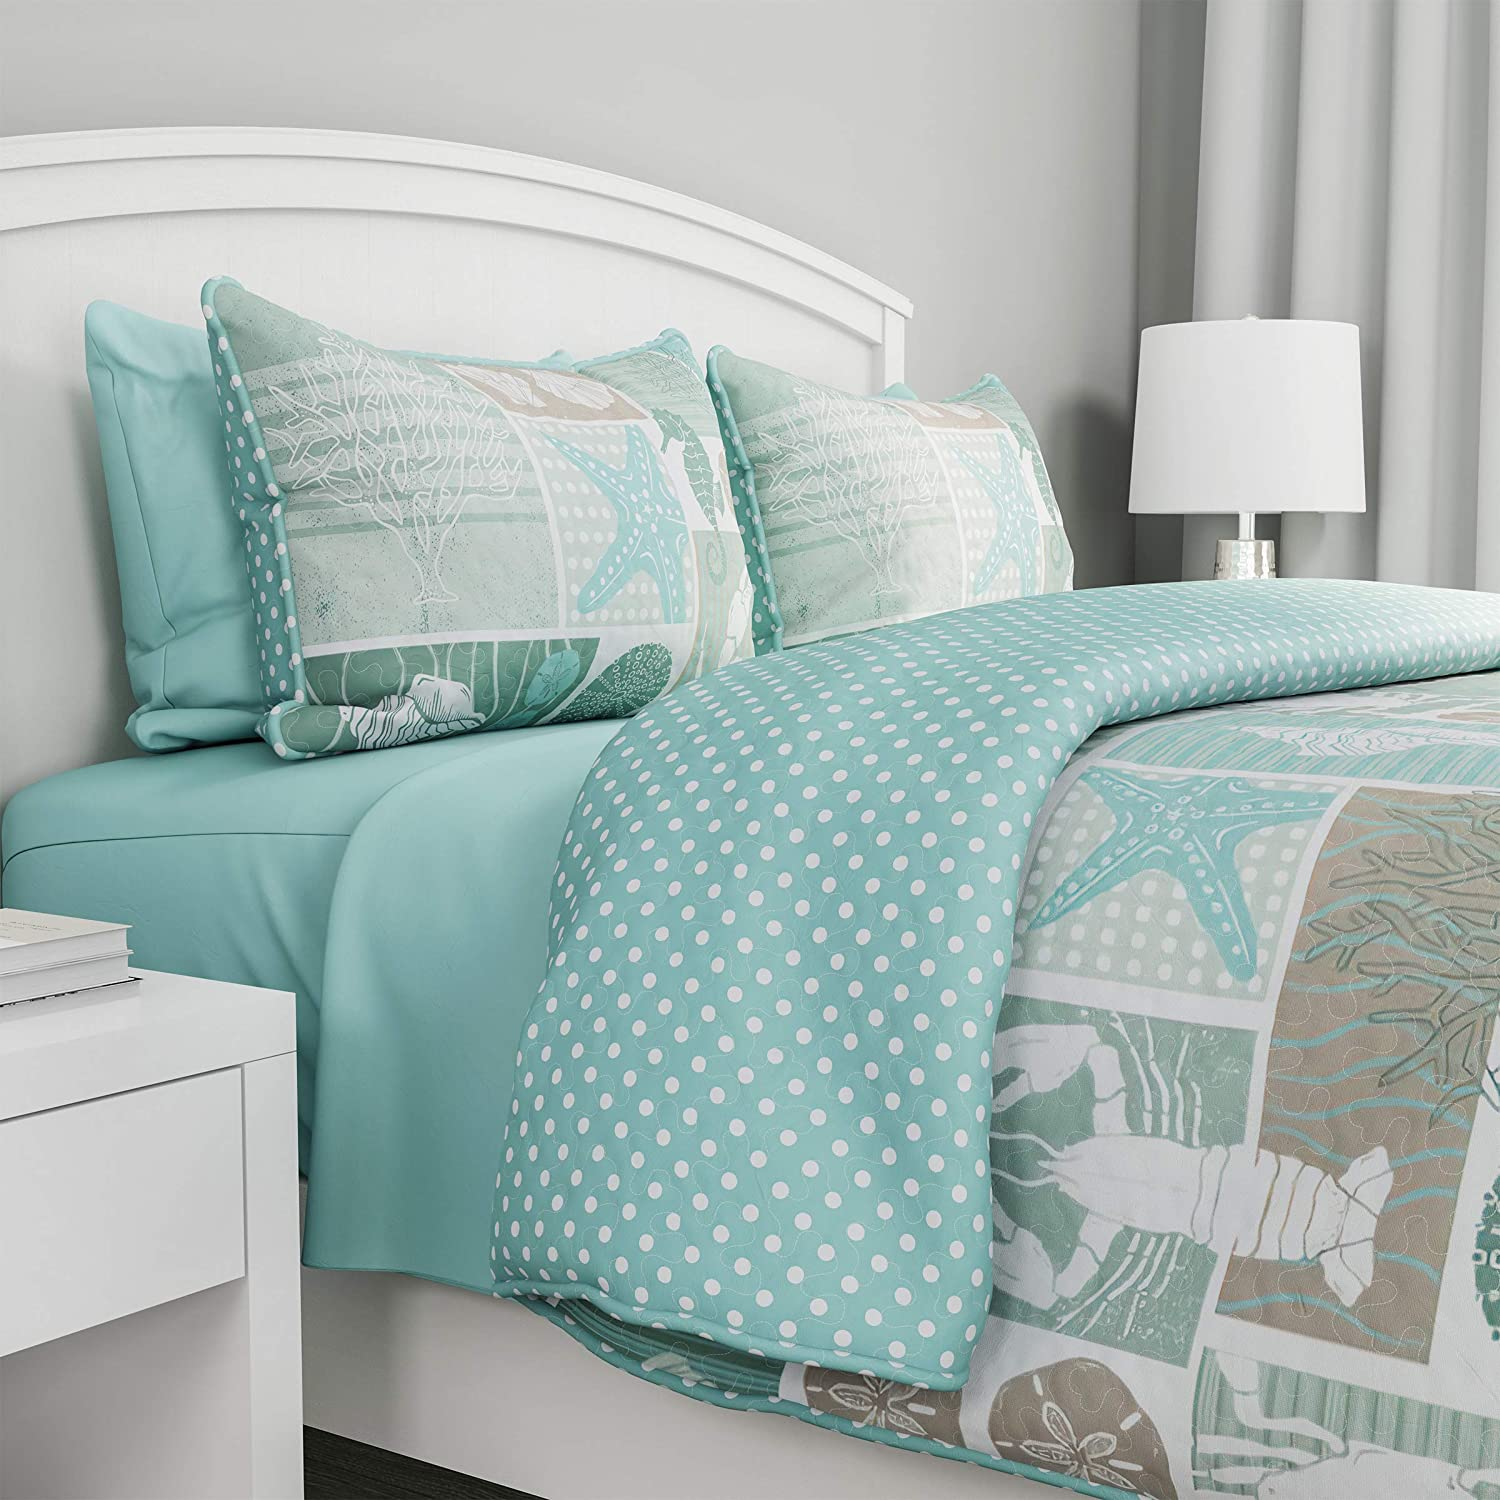 Bedford Home 2-Piece Quilt and Great interest Milwaukee Mall Harbor Set Town-Ve Bedding –